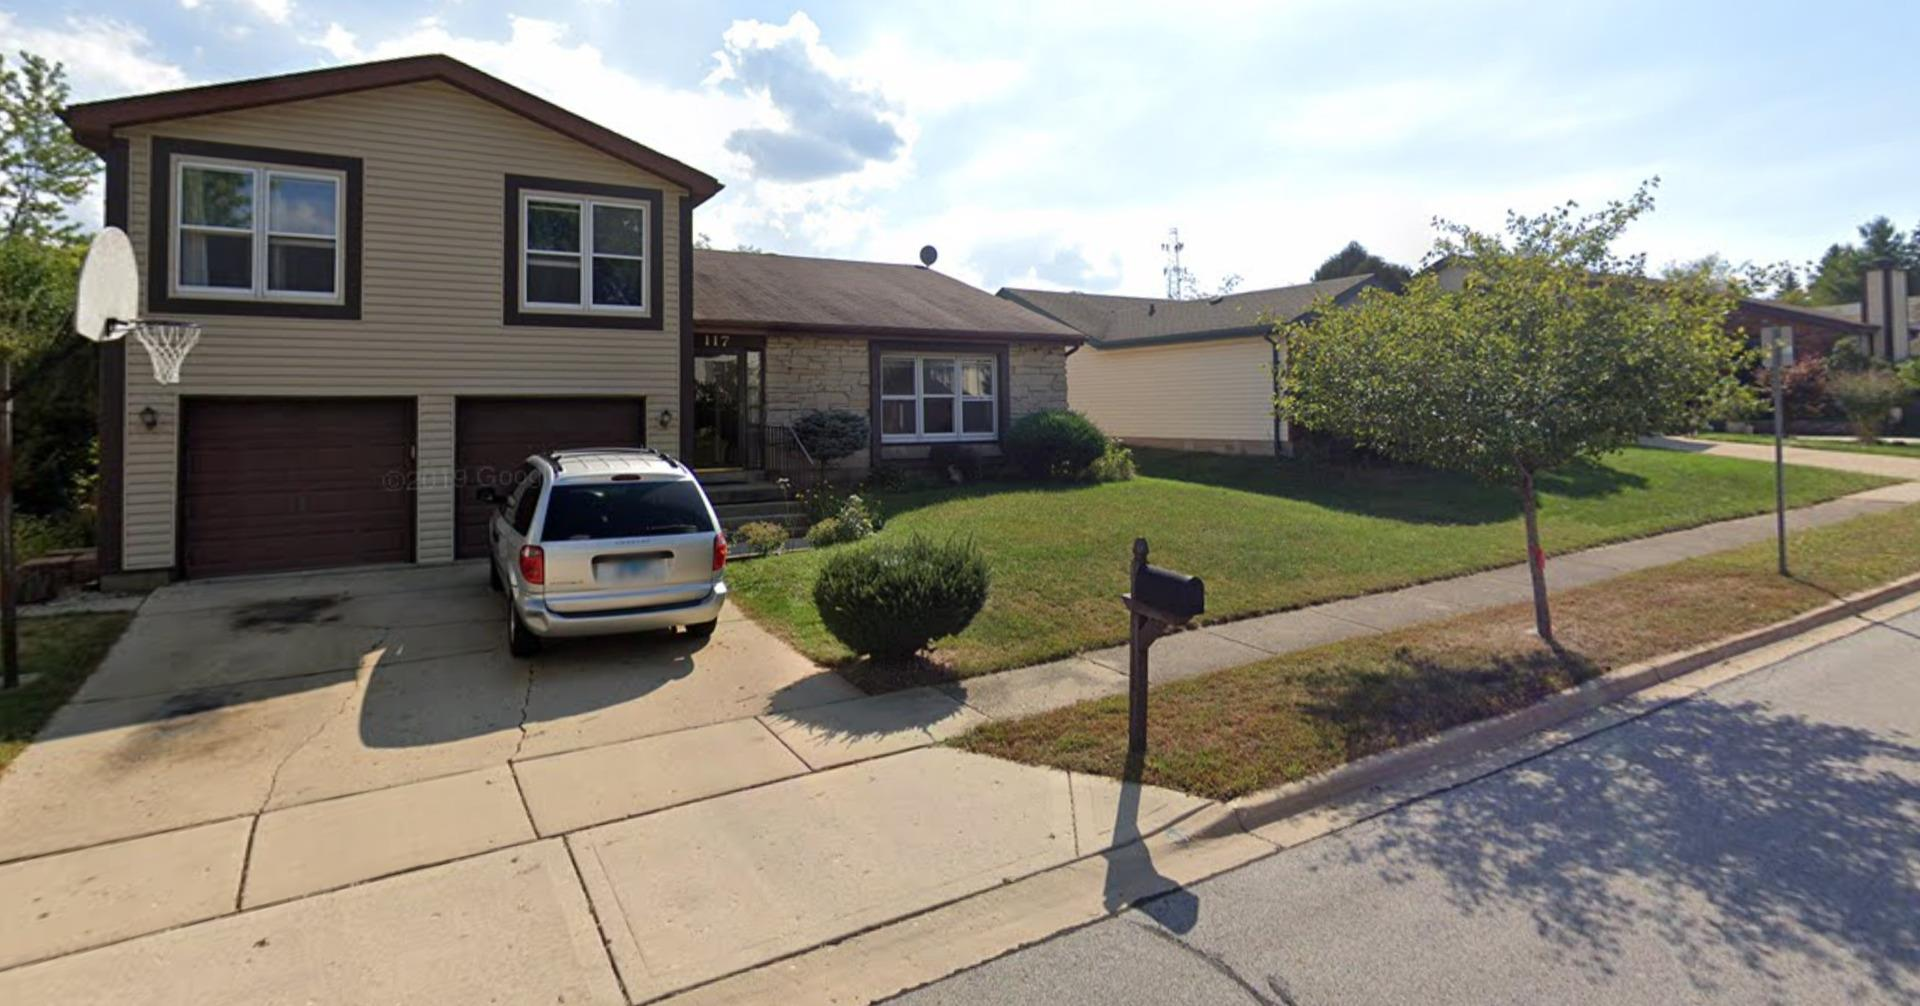 117 HARDING Court, Glendale Heights, IL 60139 - #: 10615559